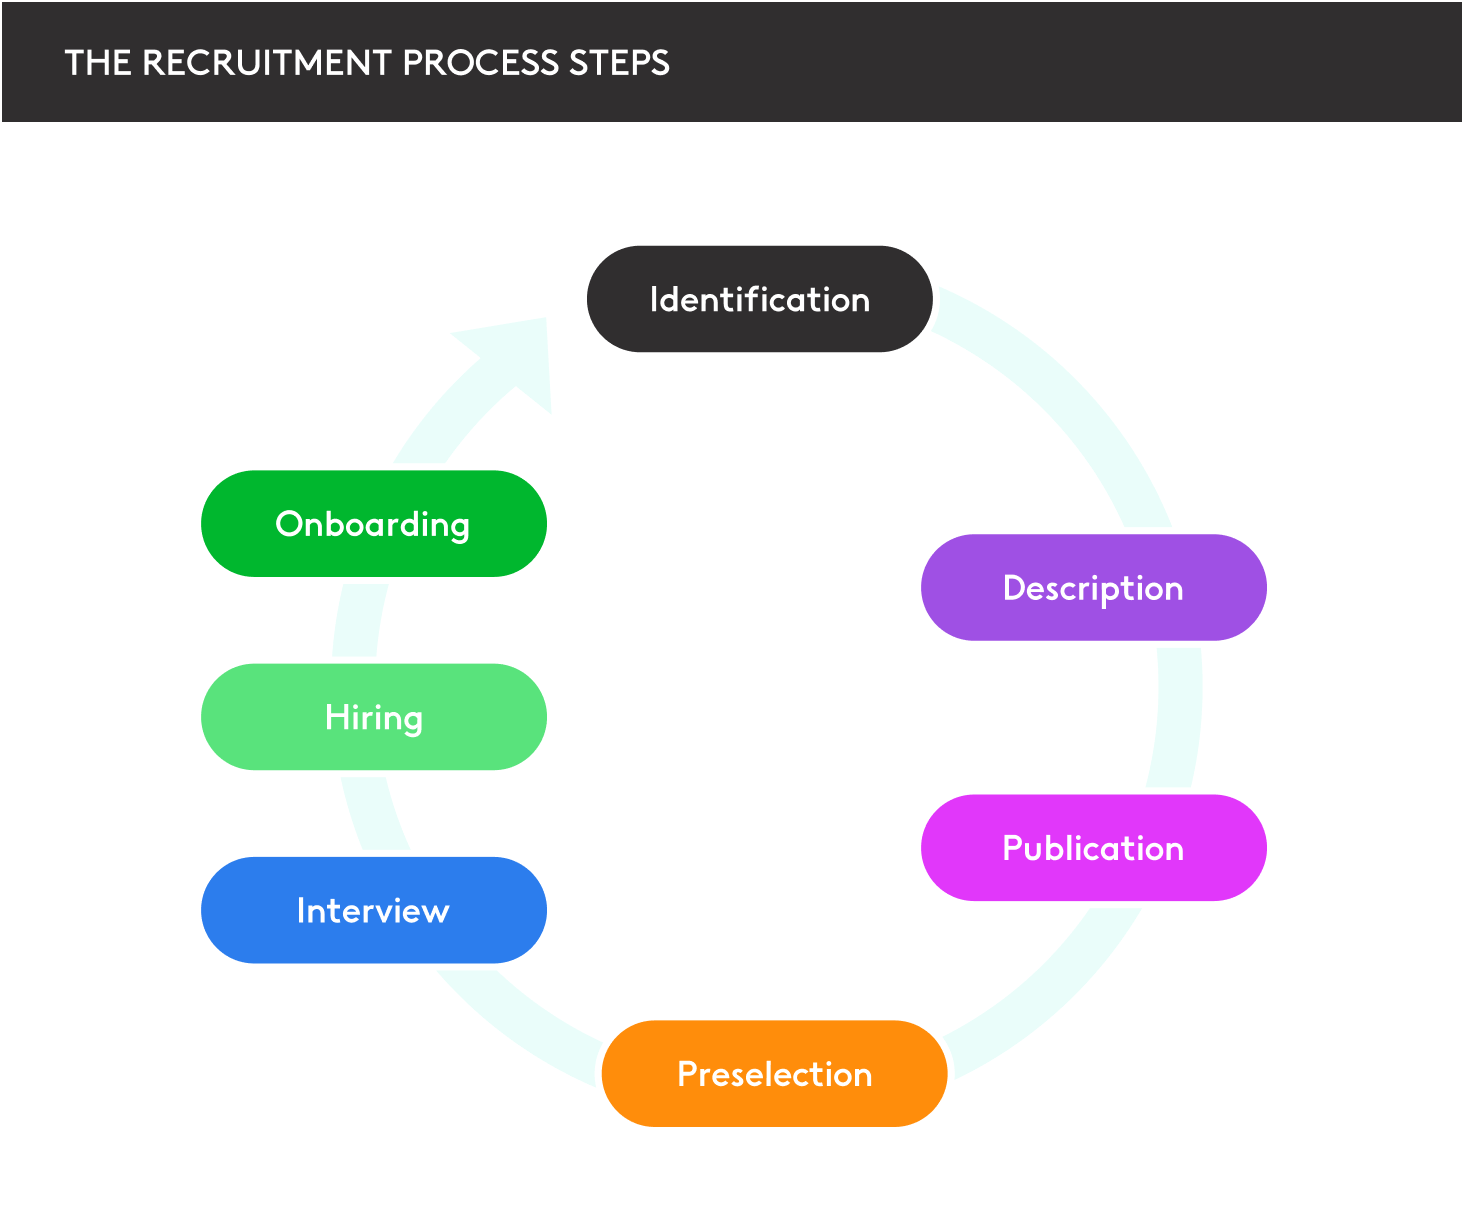 phases of the recruitment process